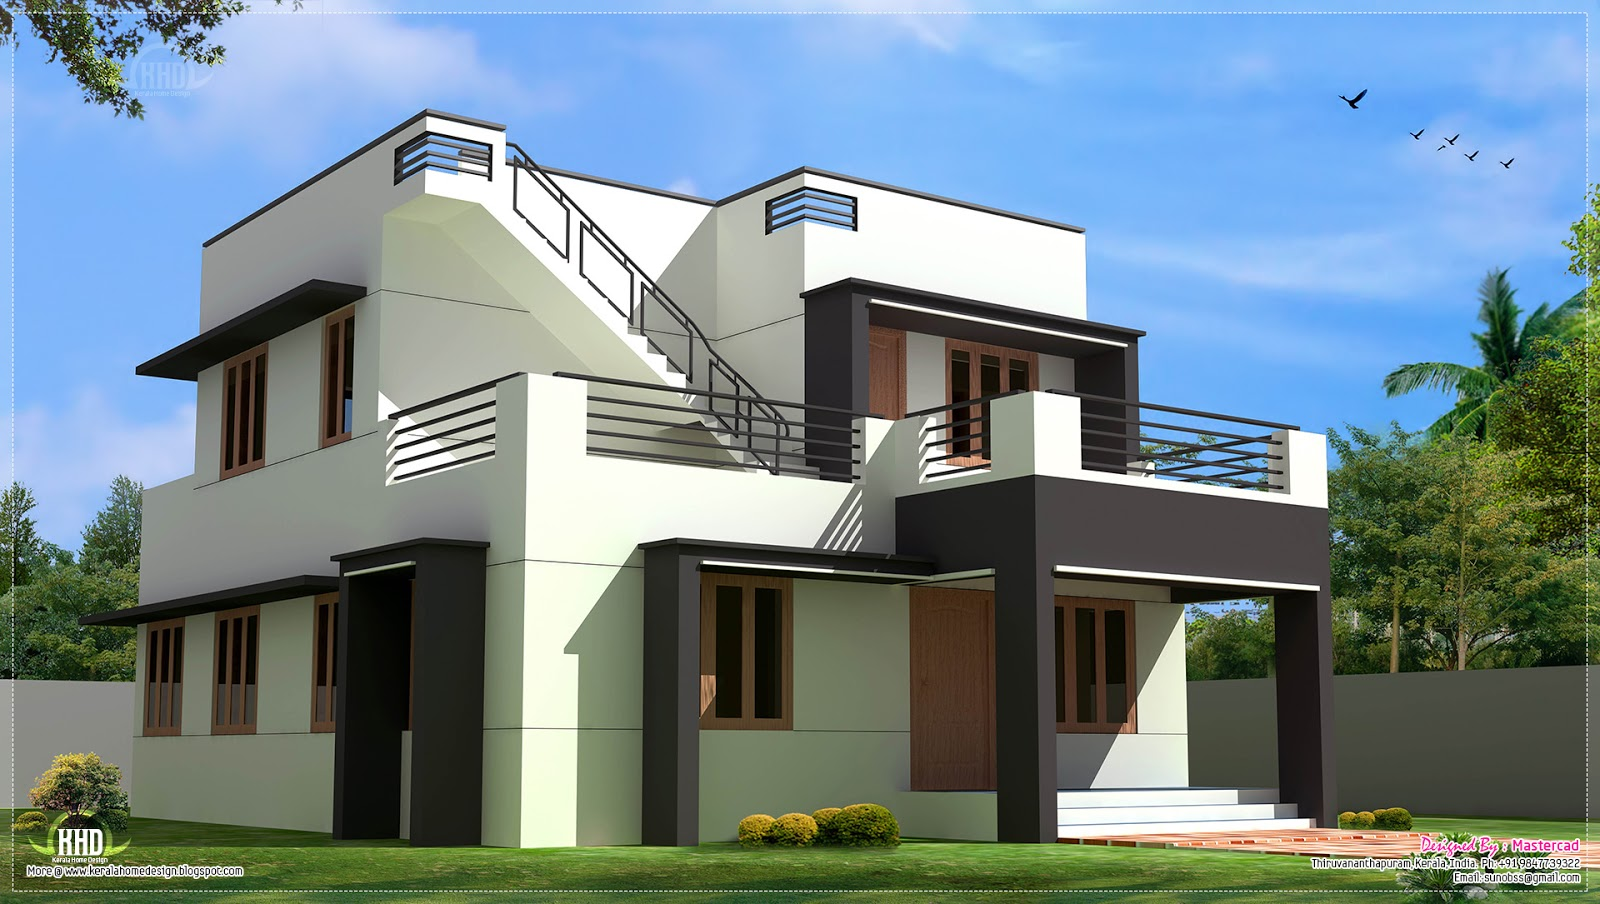 New Home Designs Pictures. 1700 sq ft modern home New Home Design